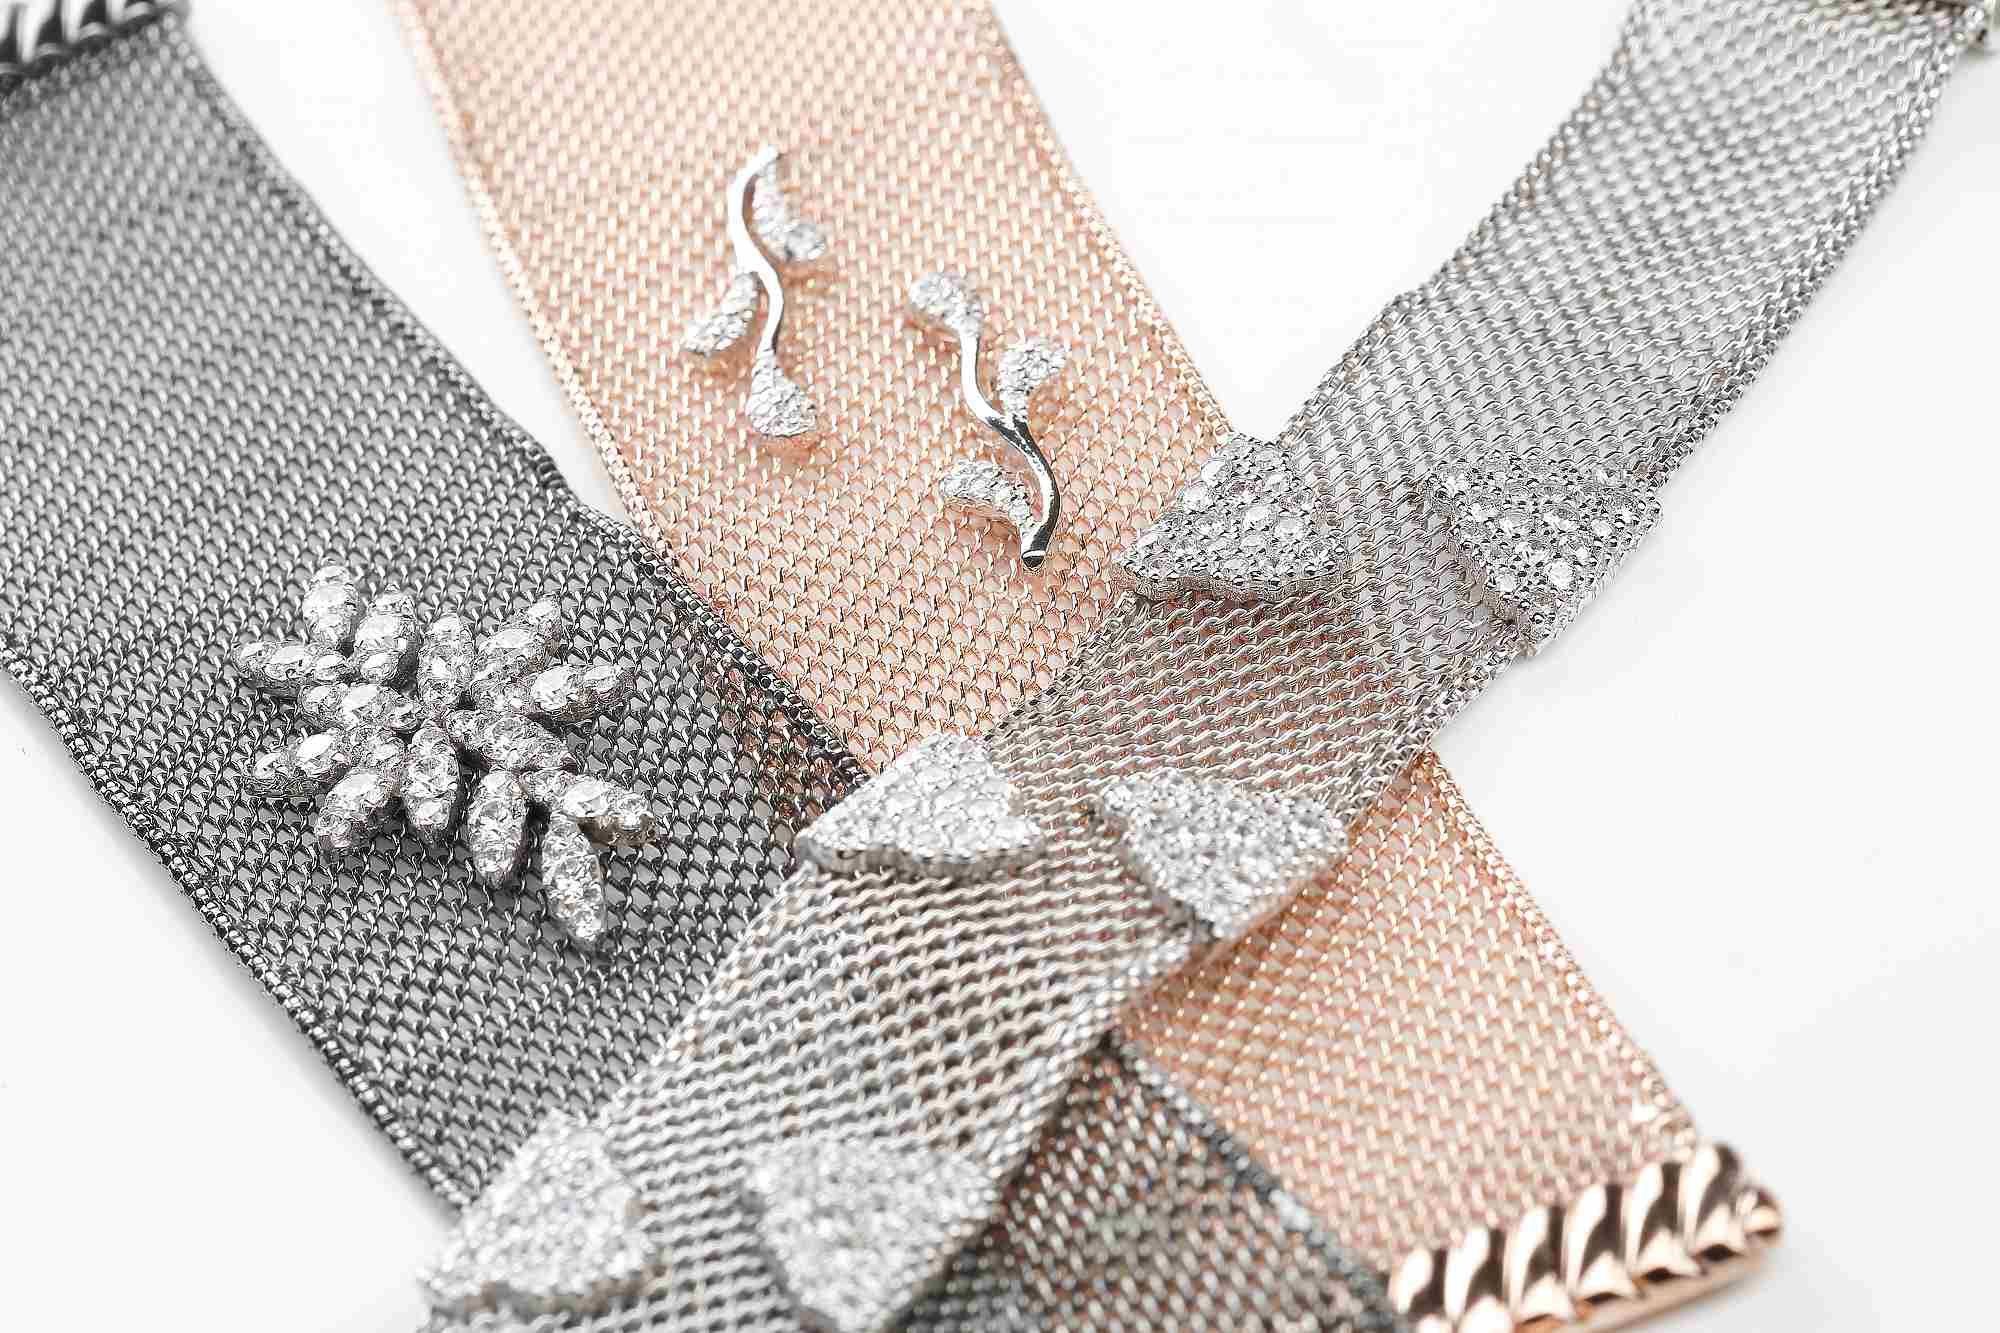 Parrini Gioielli - particularly Bracelets